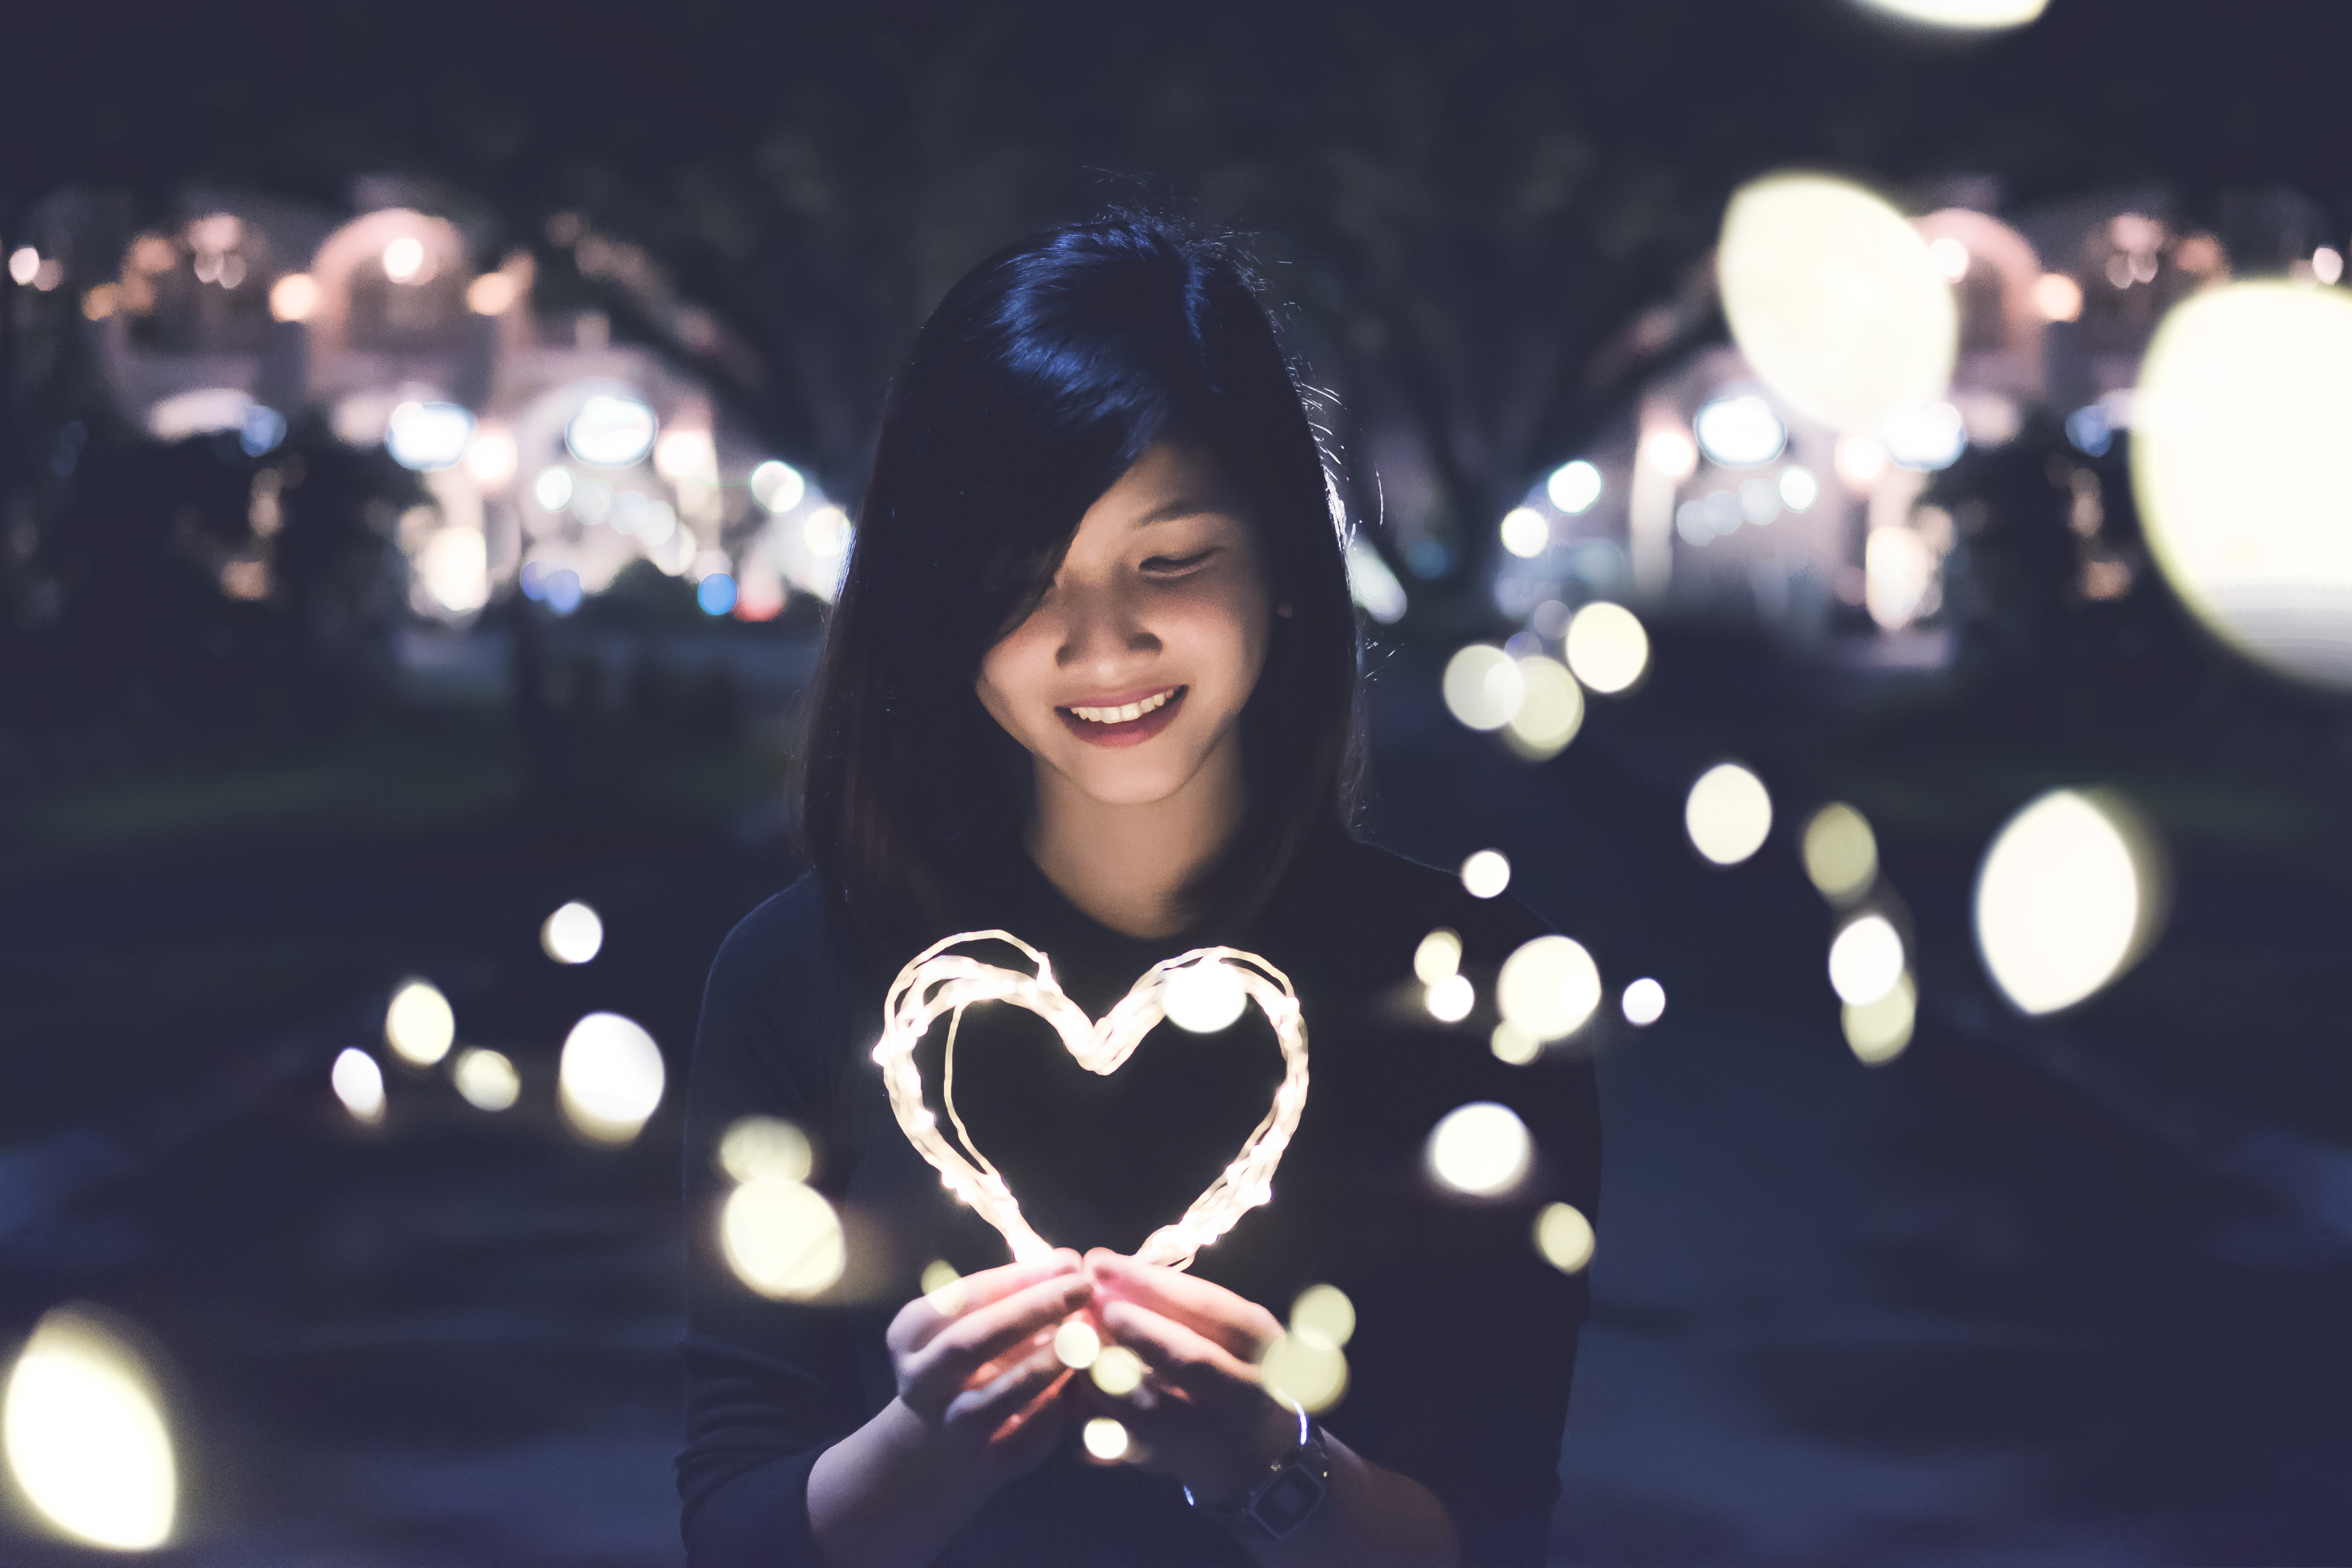 Fast dating. Fast flirting dating site · FlitsDate: Speeddaten · Is it time to take a dating fast?